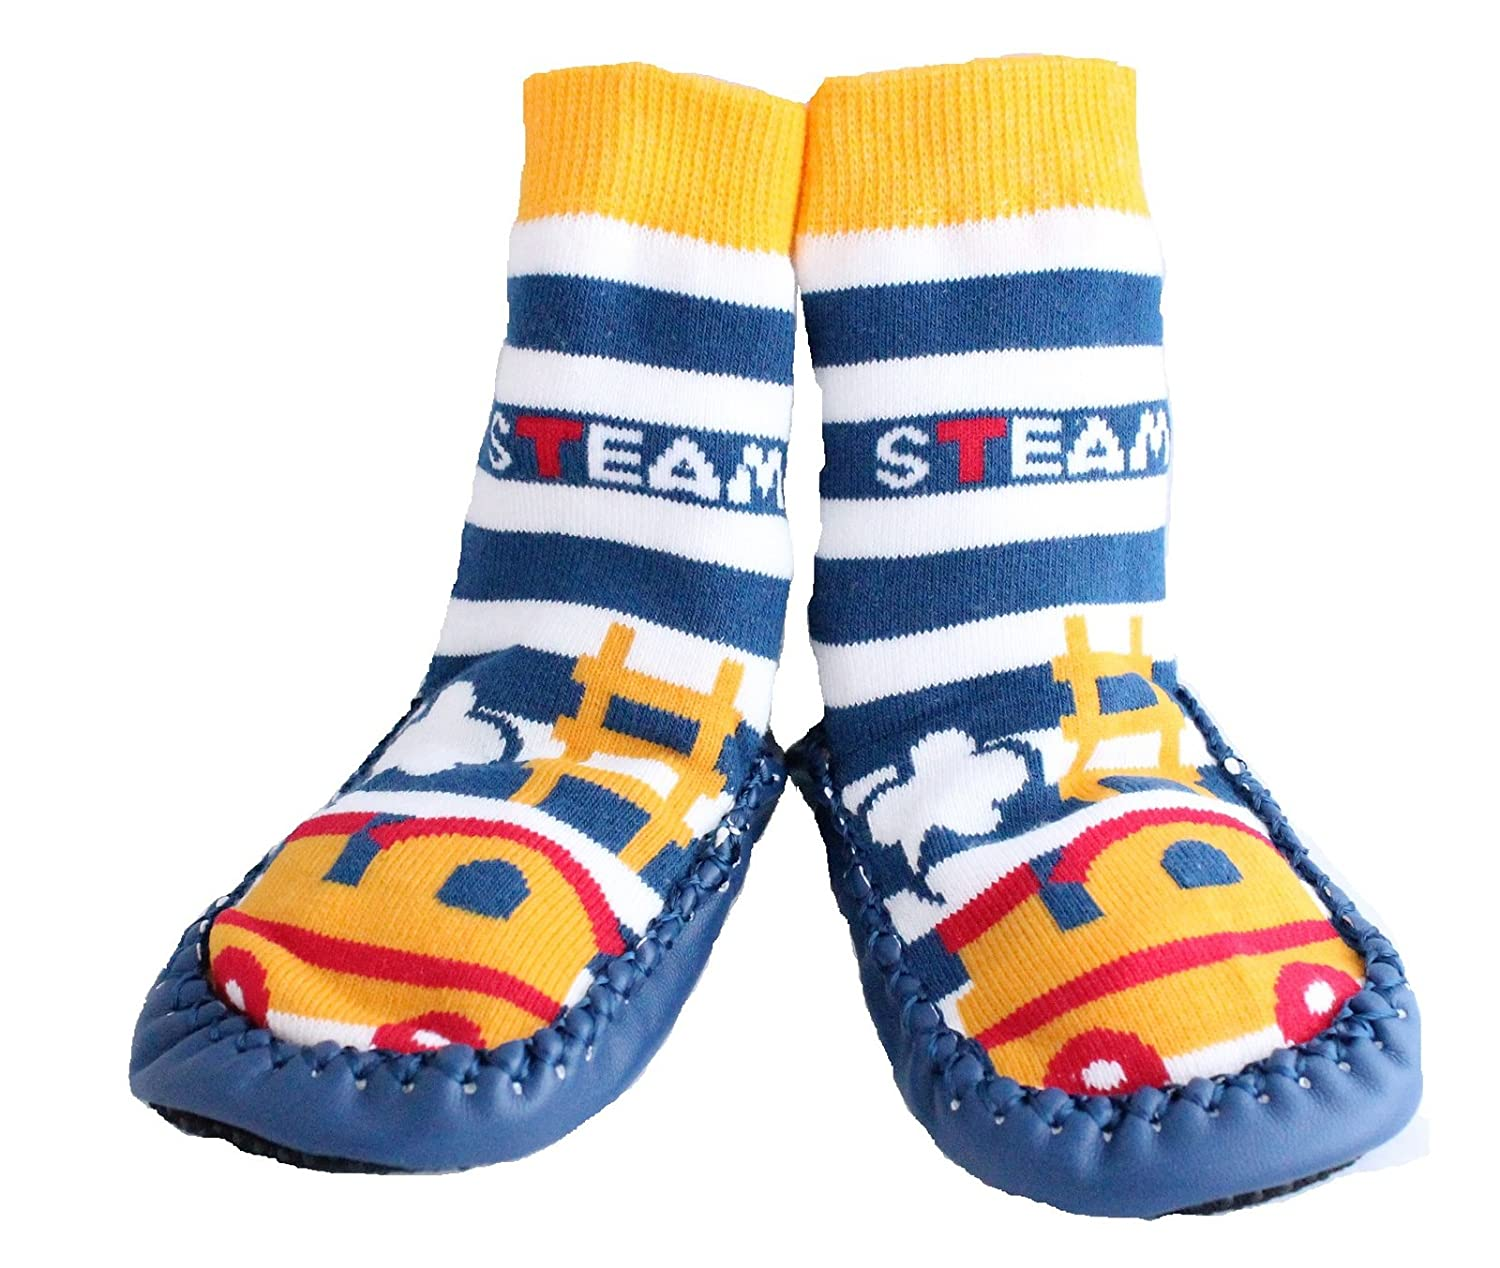 Baby Boy Toddlers Kids Indoor Slippers Shoe Socks Moccasins Anti